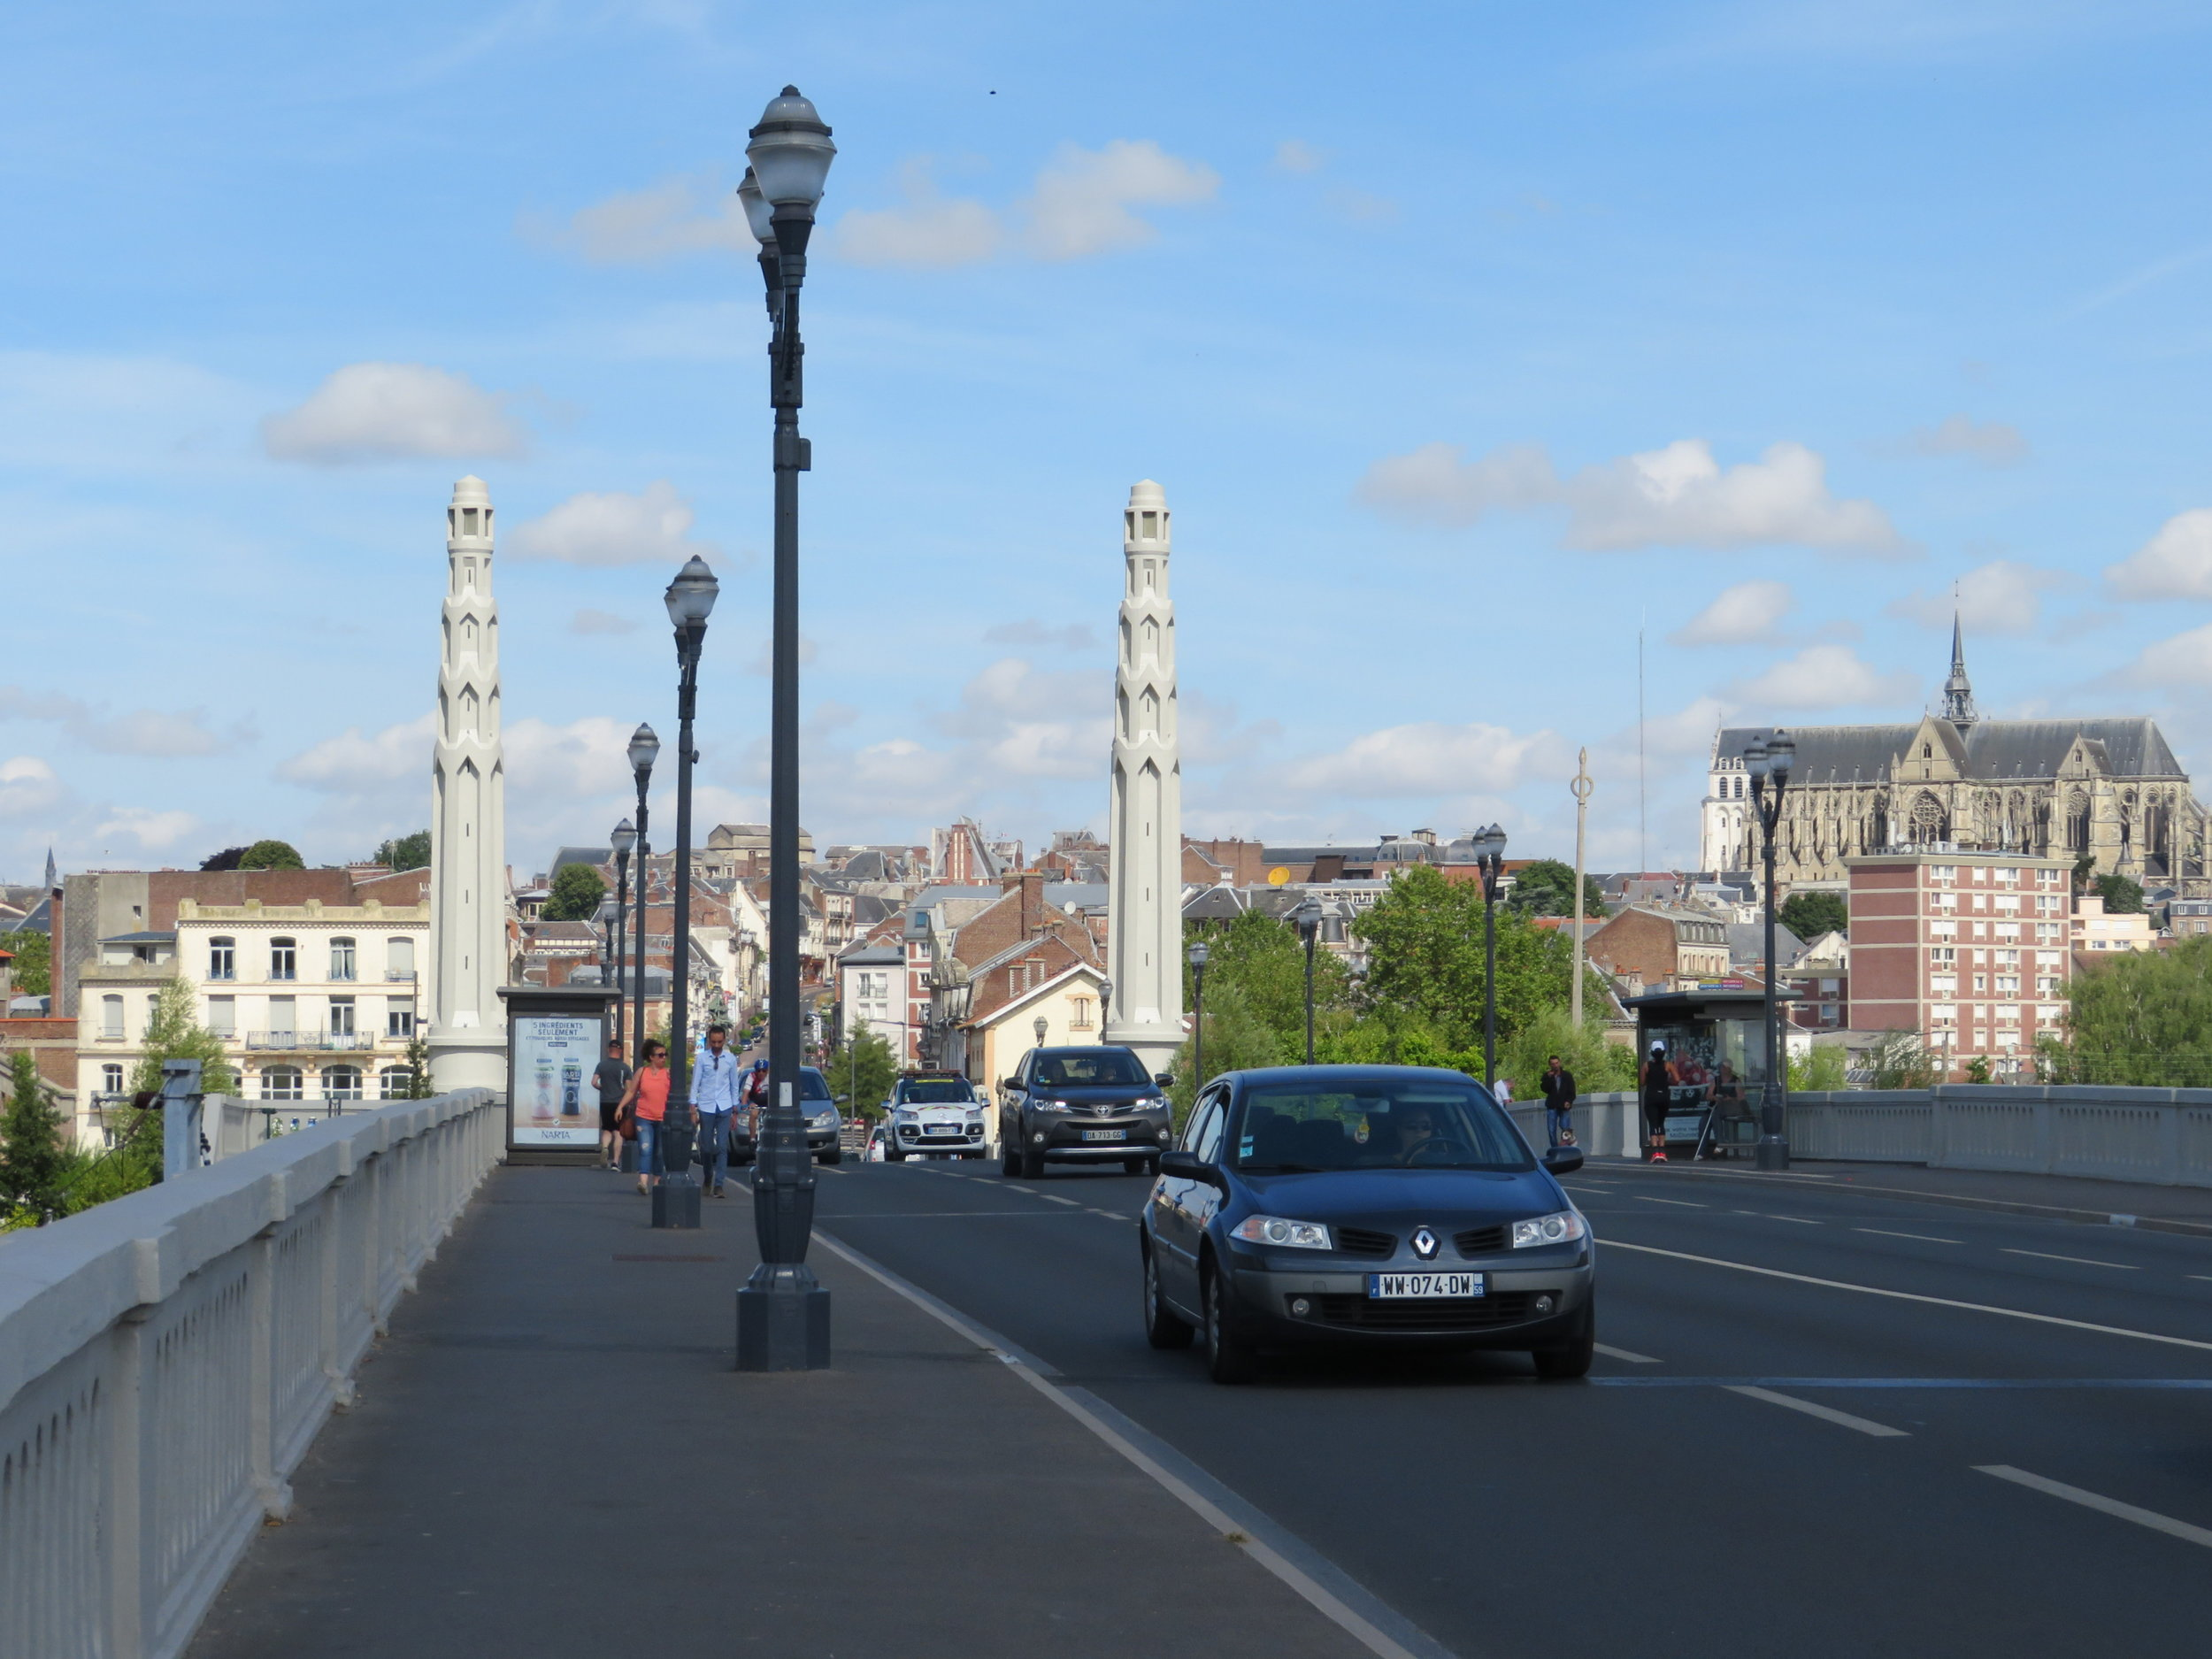 We passed over the bridge in St.Quentin, the very same path Napoleon took in 1810.